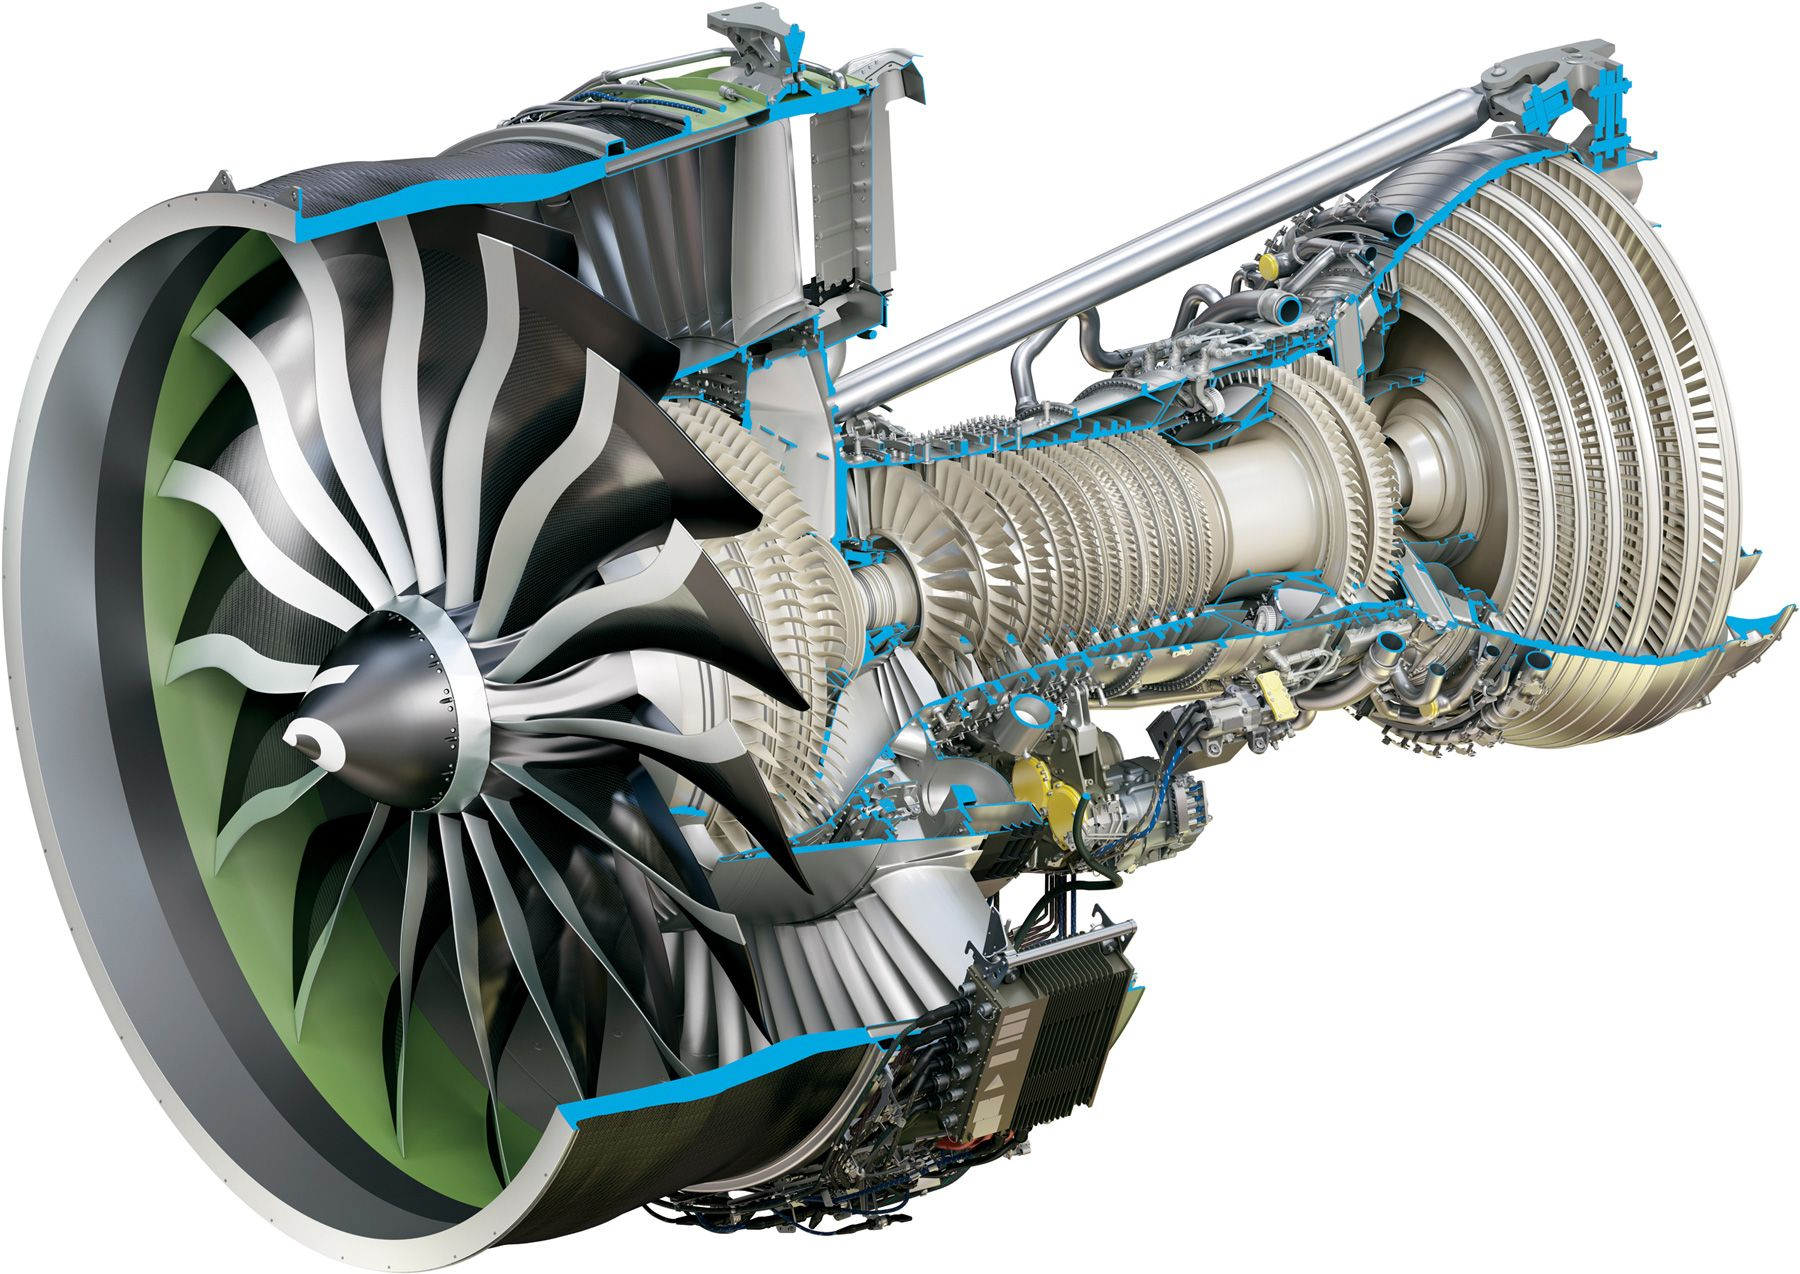 Ge bets on ceramic jet engine parts lounge betting advice